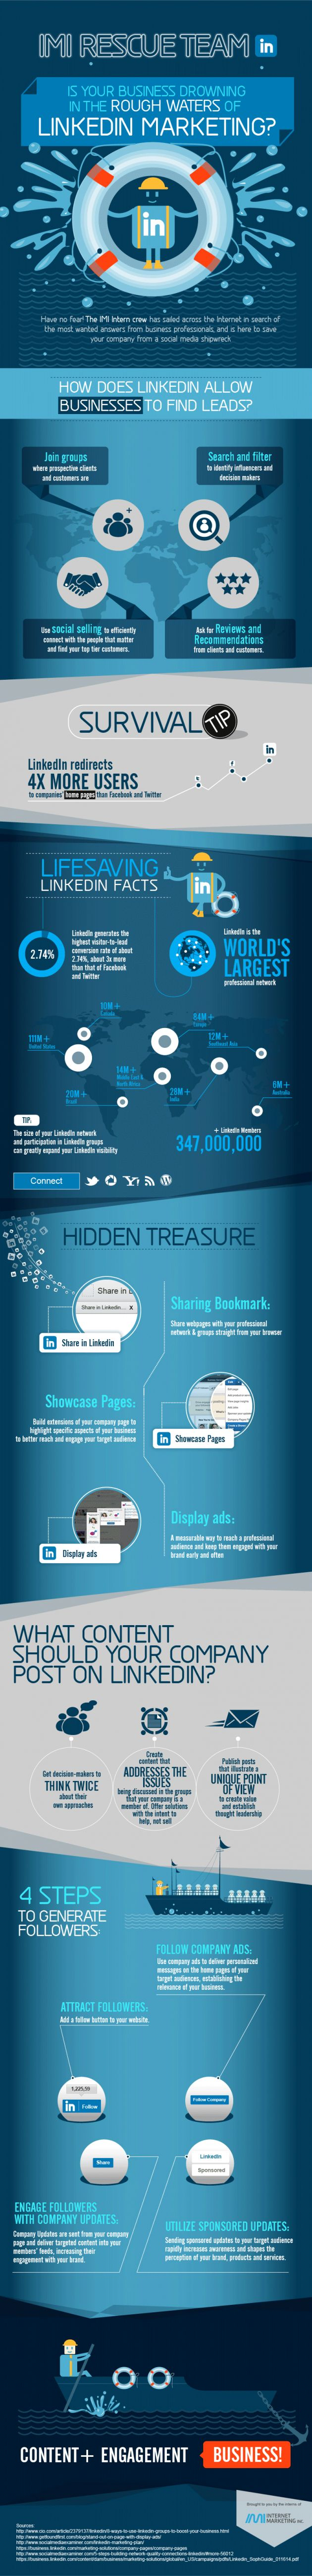 You're in Desperate Need of a LinkedIn Strategy. Here's How to Get Started (Infographic) | Inc.com